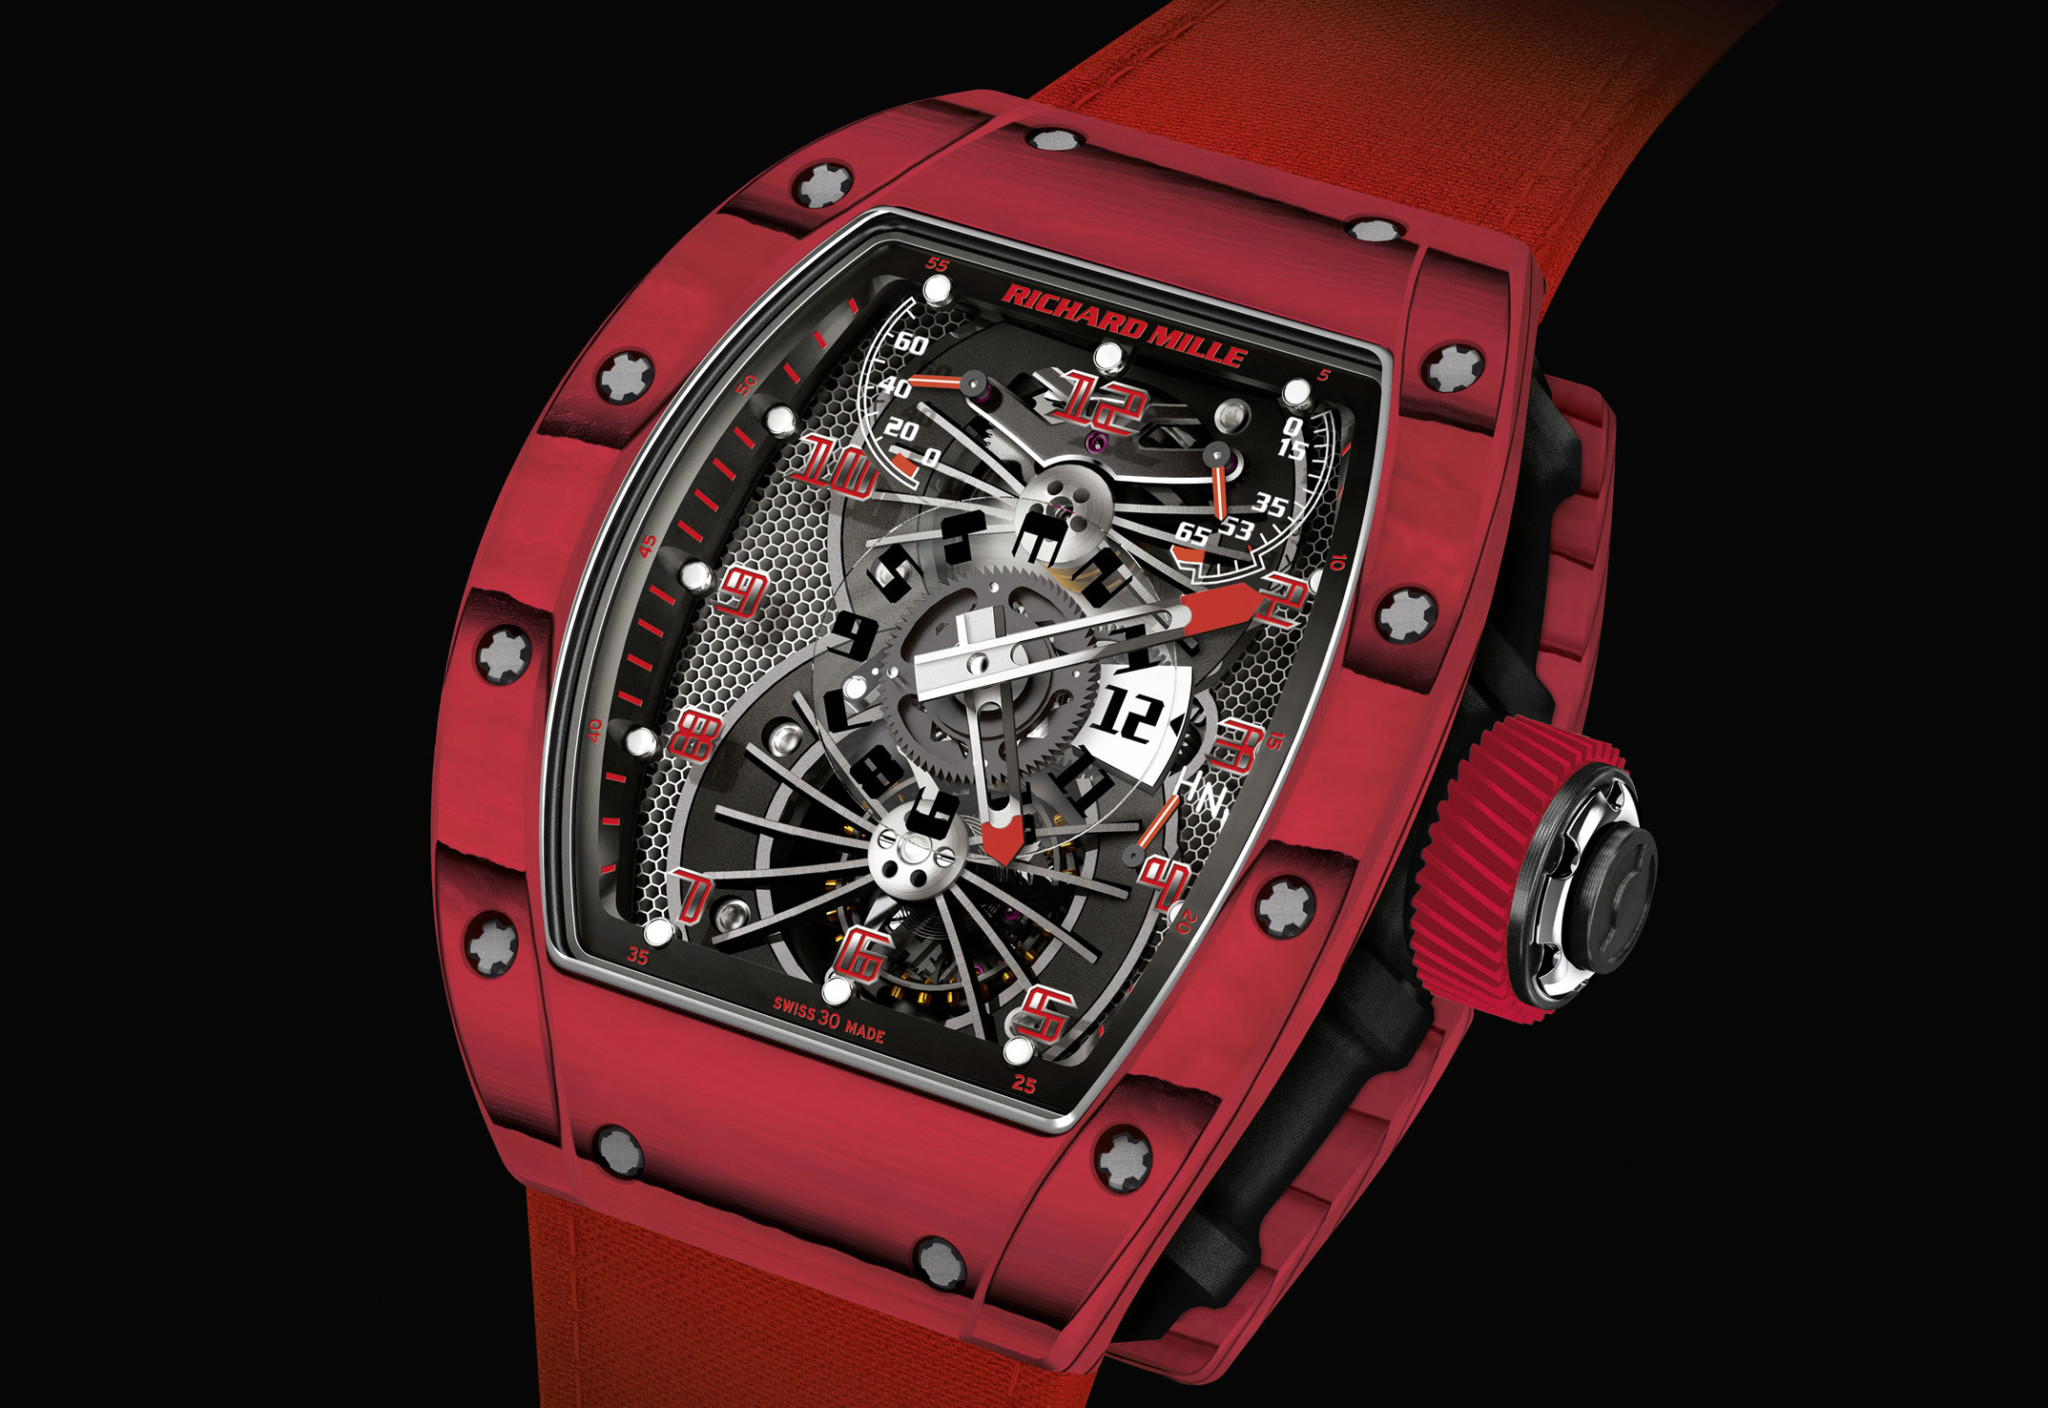 Richard Mille S Latest Watchmaking Innovations Limited To Just Ten Pieces Watchpro Usa